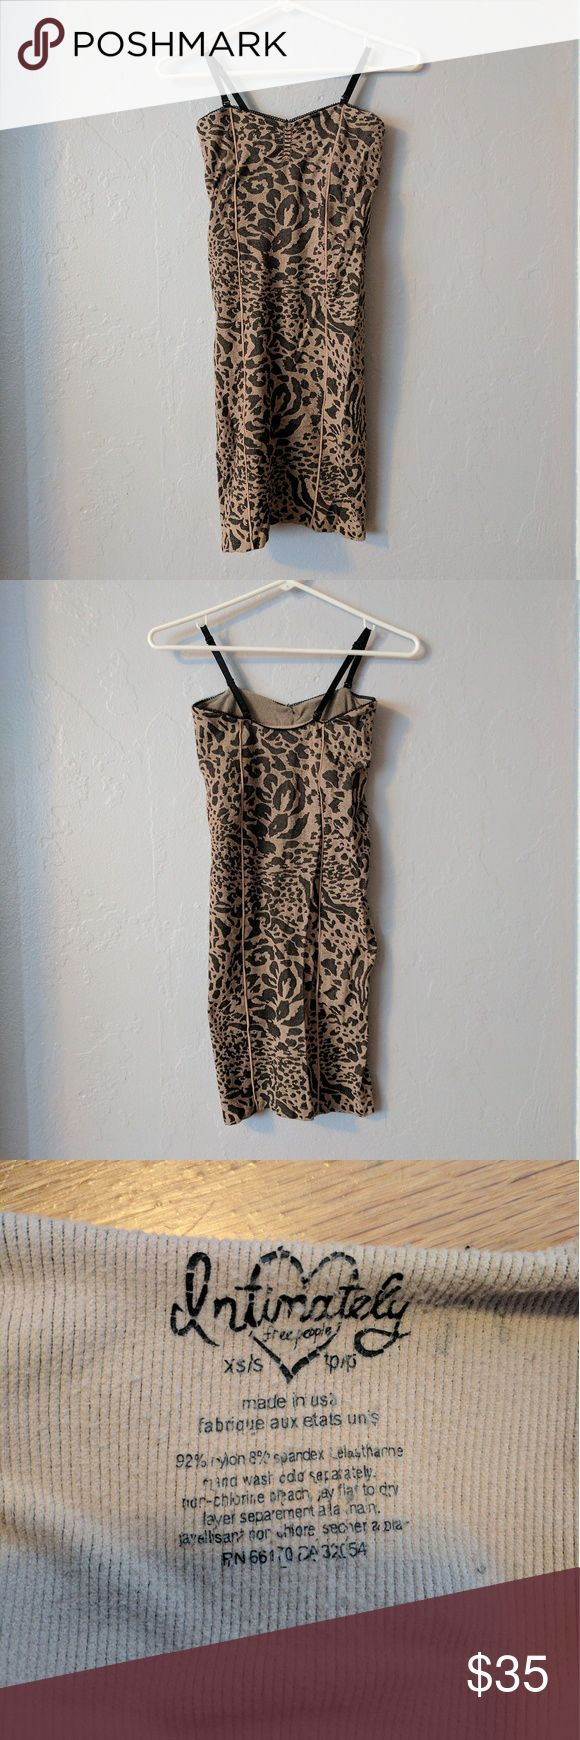 """Intimately Free People leopard print bodycon dress Super stretchy animal print dress. Straps are adjustable and removrable. The bodice has extra support lining. Length 26.5"""" from underarm to hem. Size is xs/s Free People Dresses Mini"""